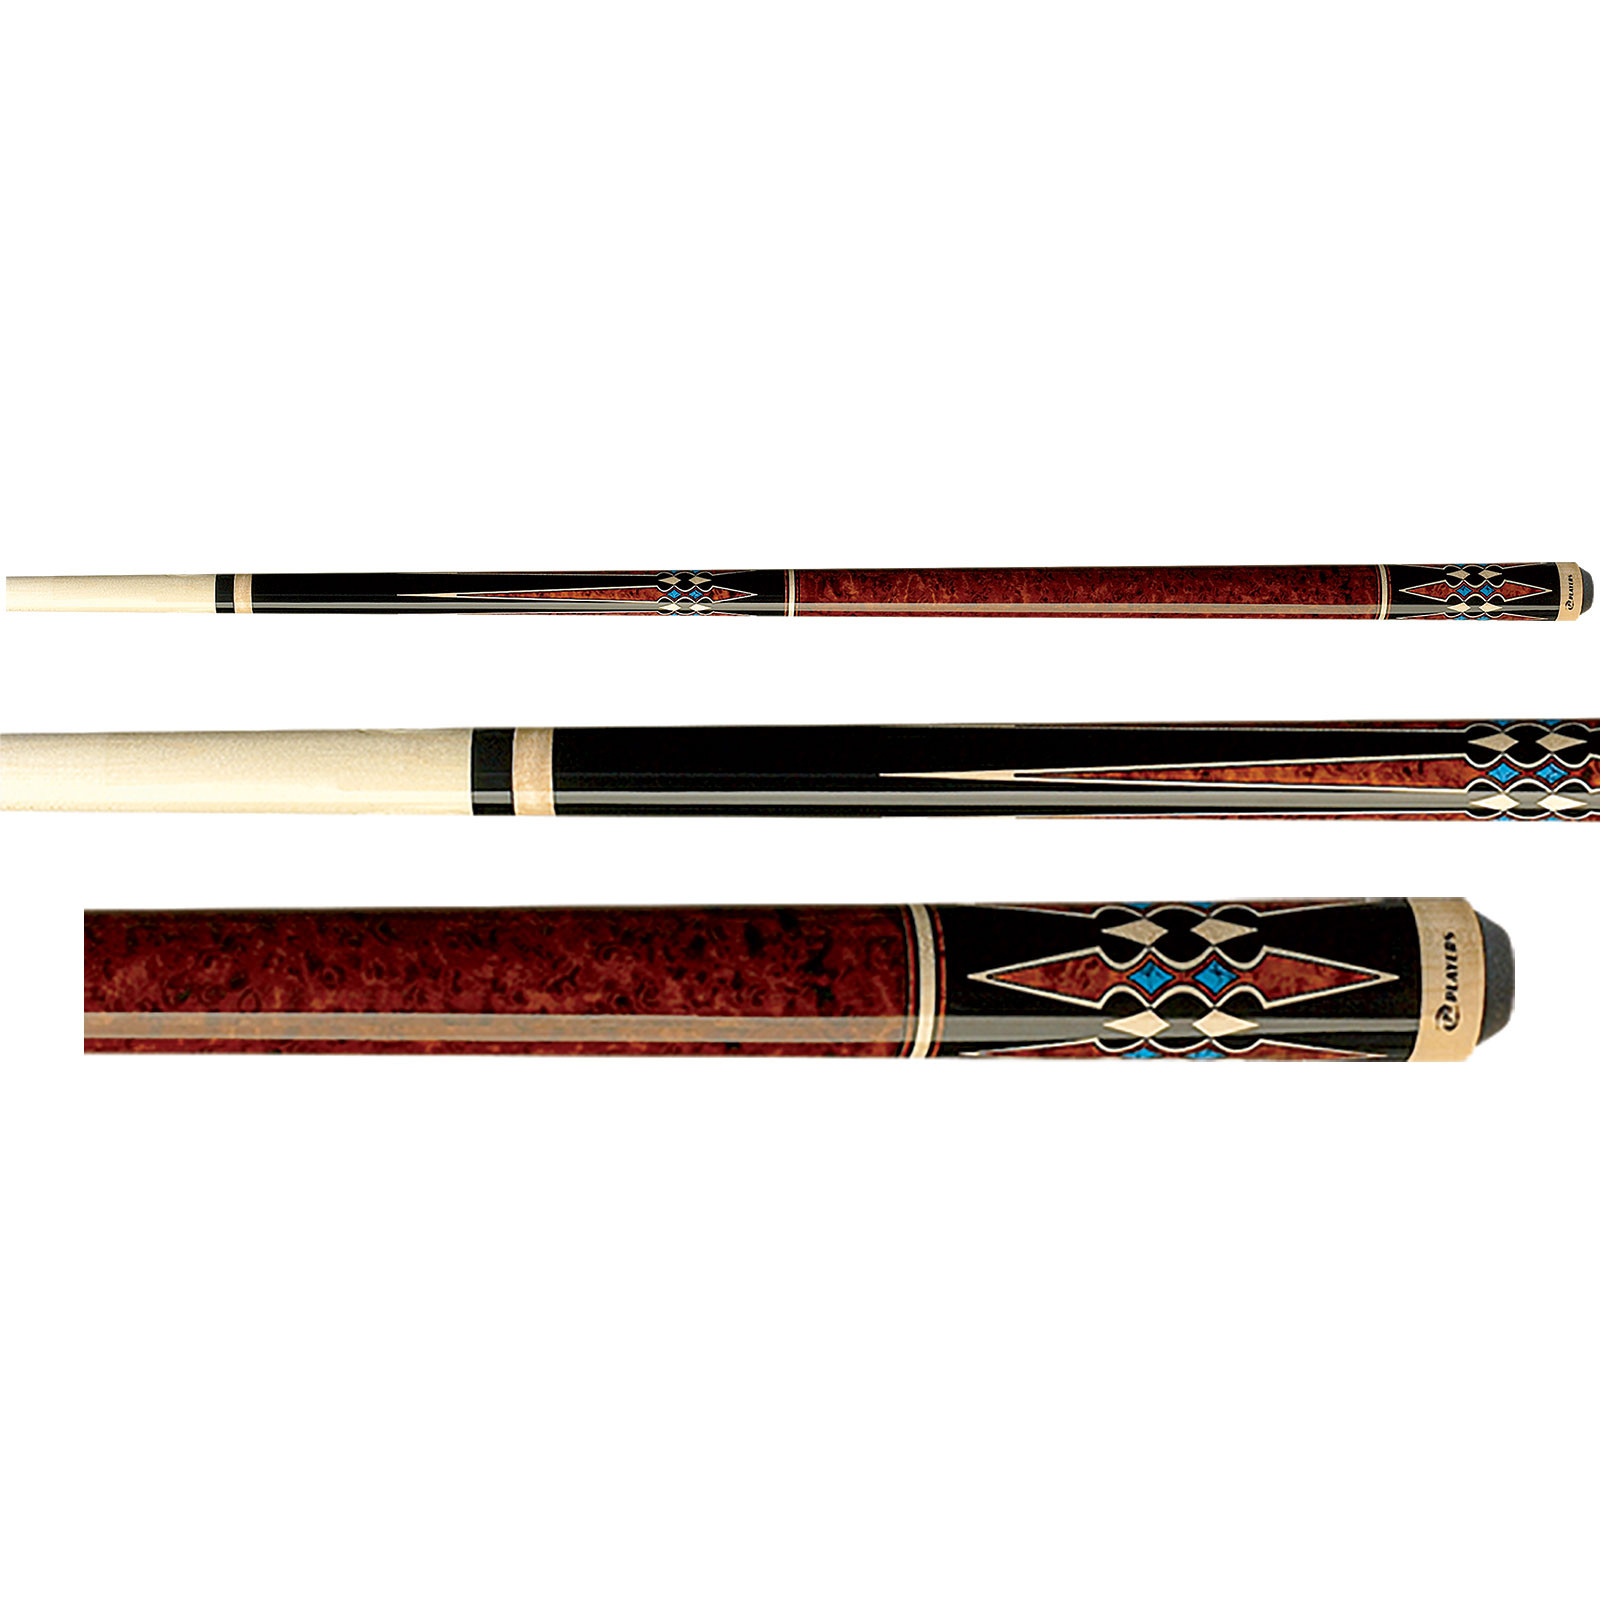 Players G-3395 Black and Walnut Brown Burl Pool Cue Stick